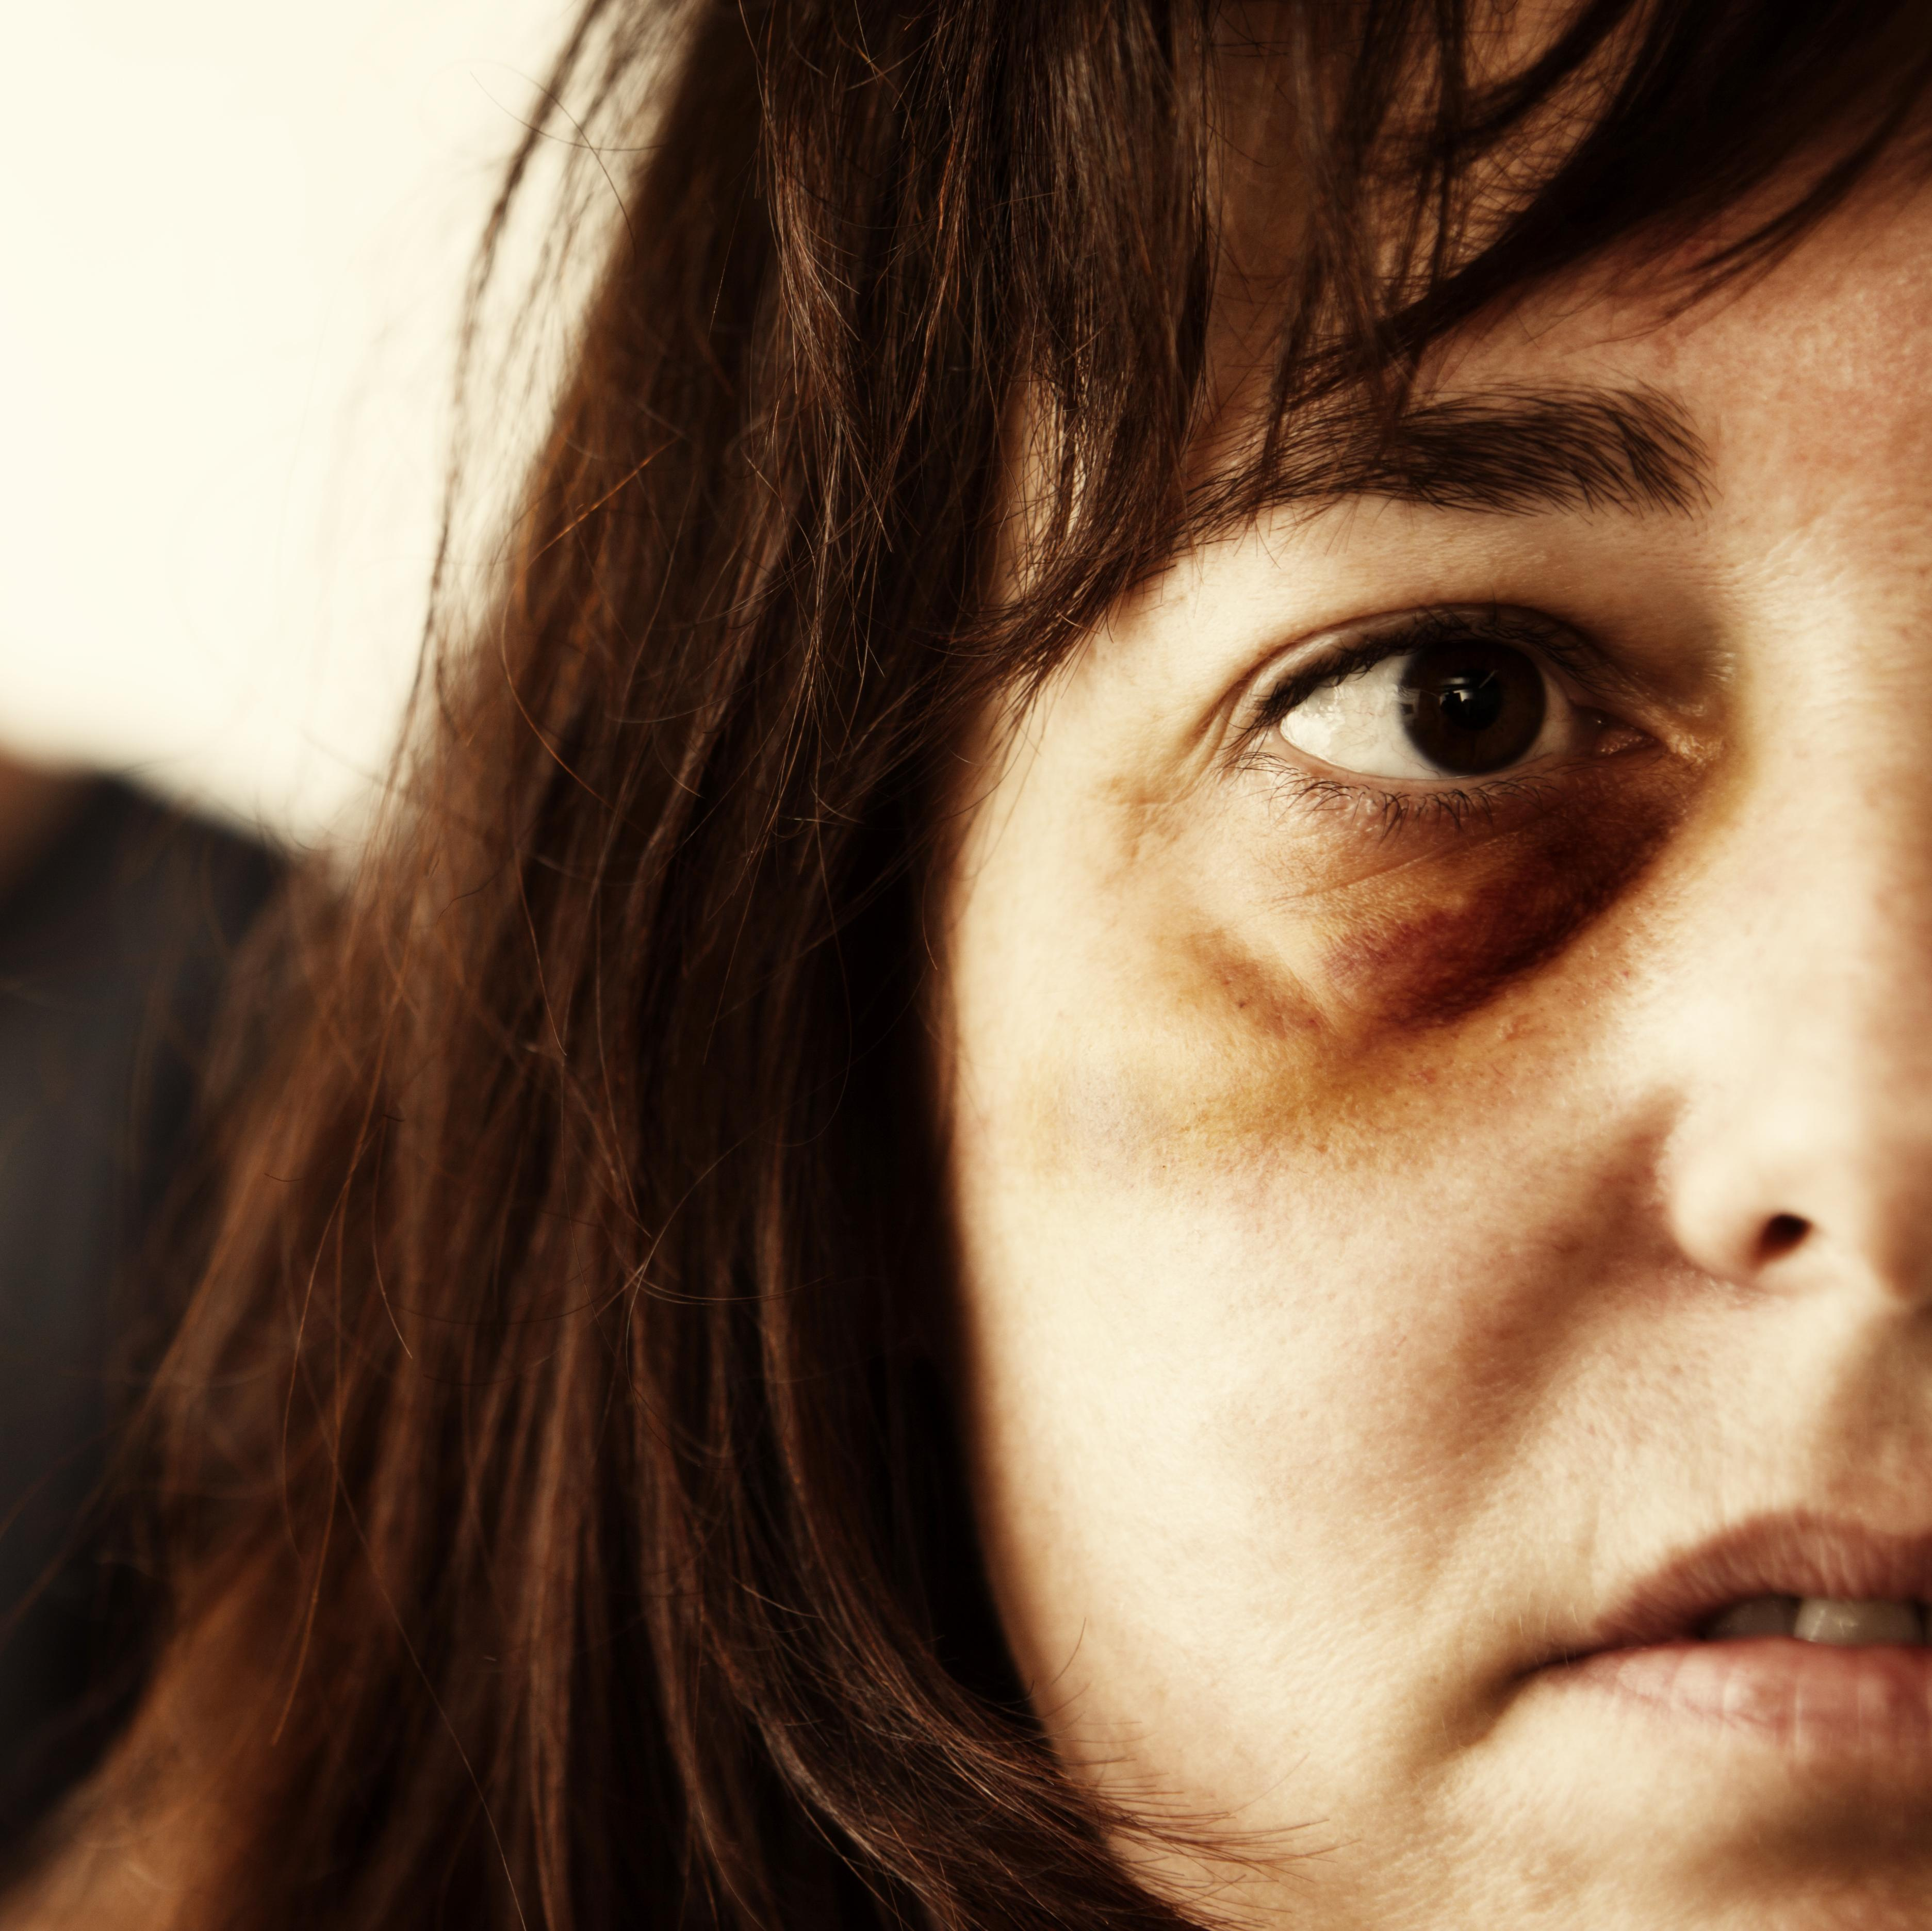 A woman with a bruised eye.